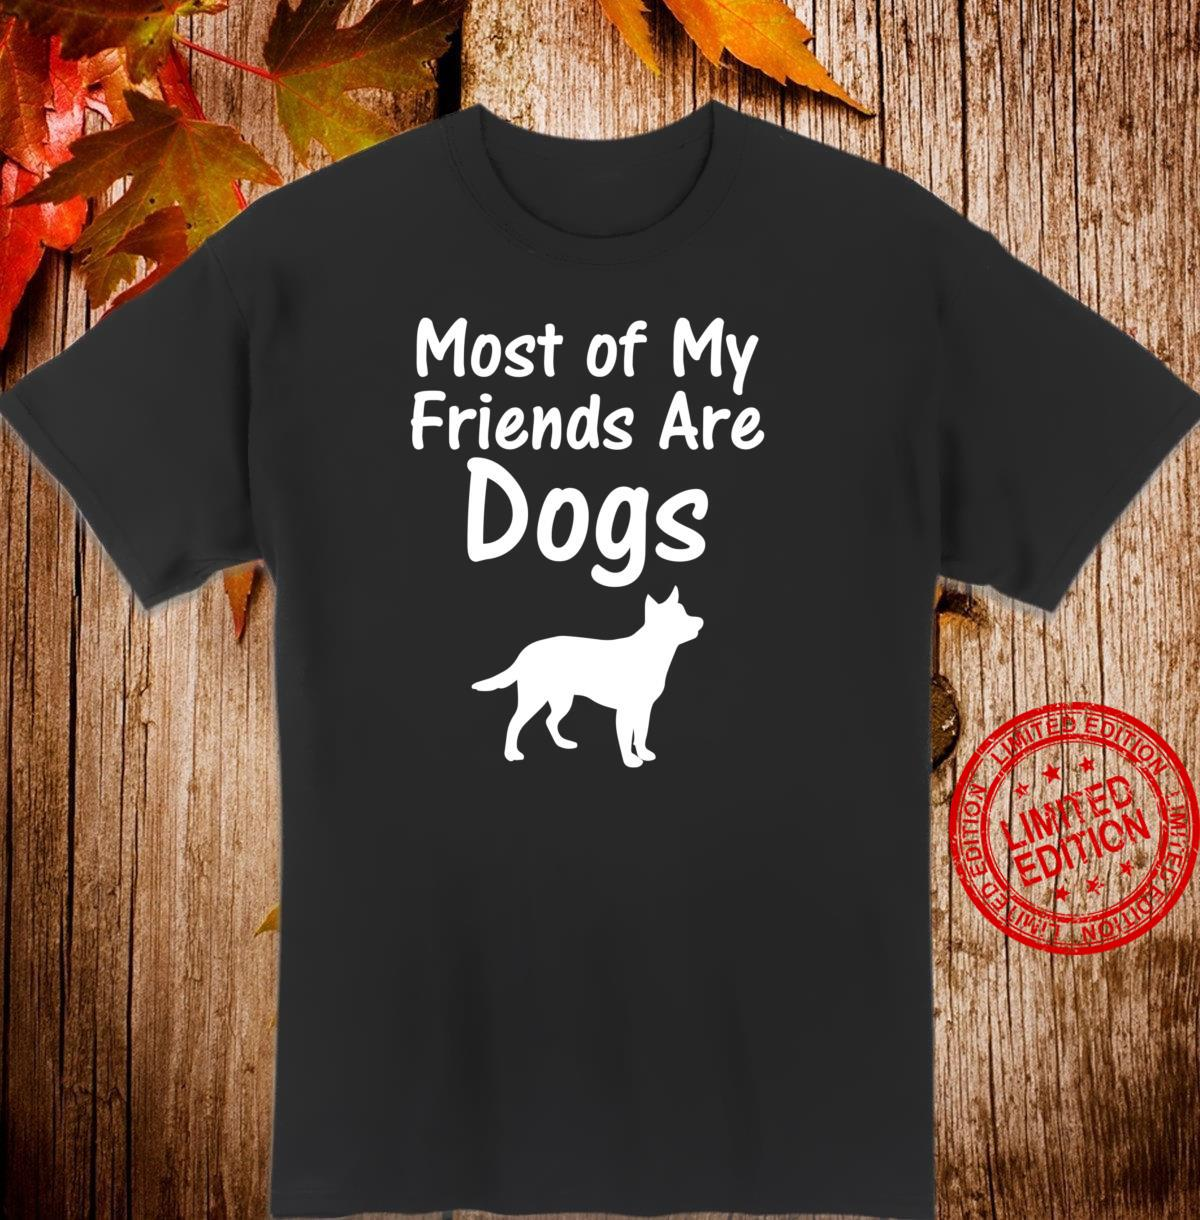 Most of My Friends are Dogs Animal Cute Dog Shirt